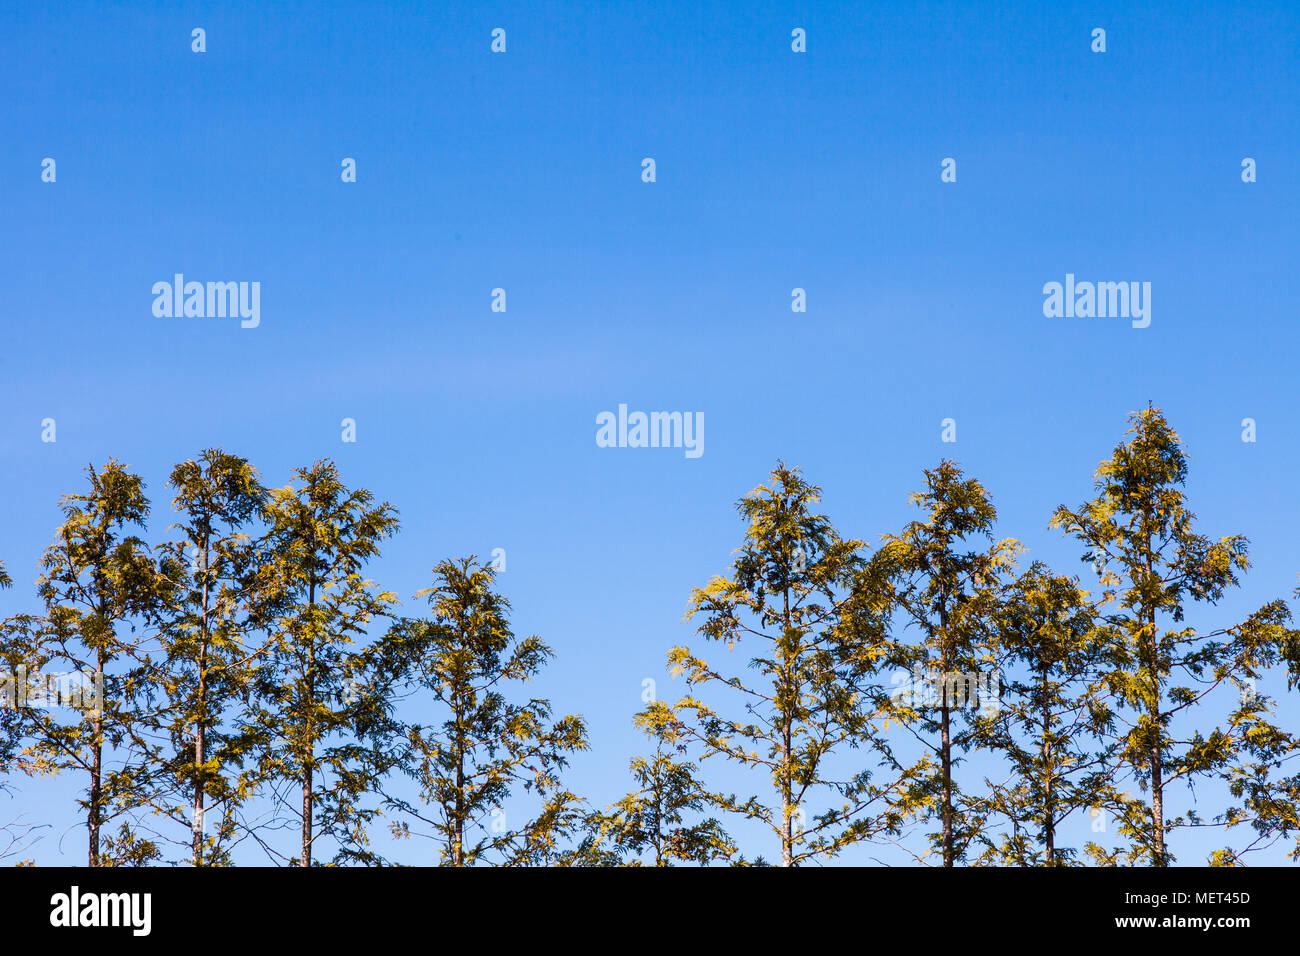 Abstract image of the tips of a Western Red Cedar hedge - Stock Image